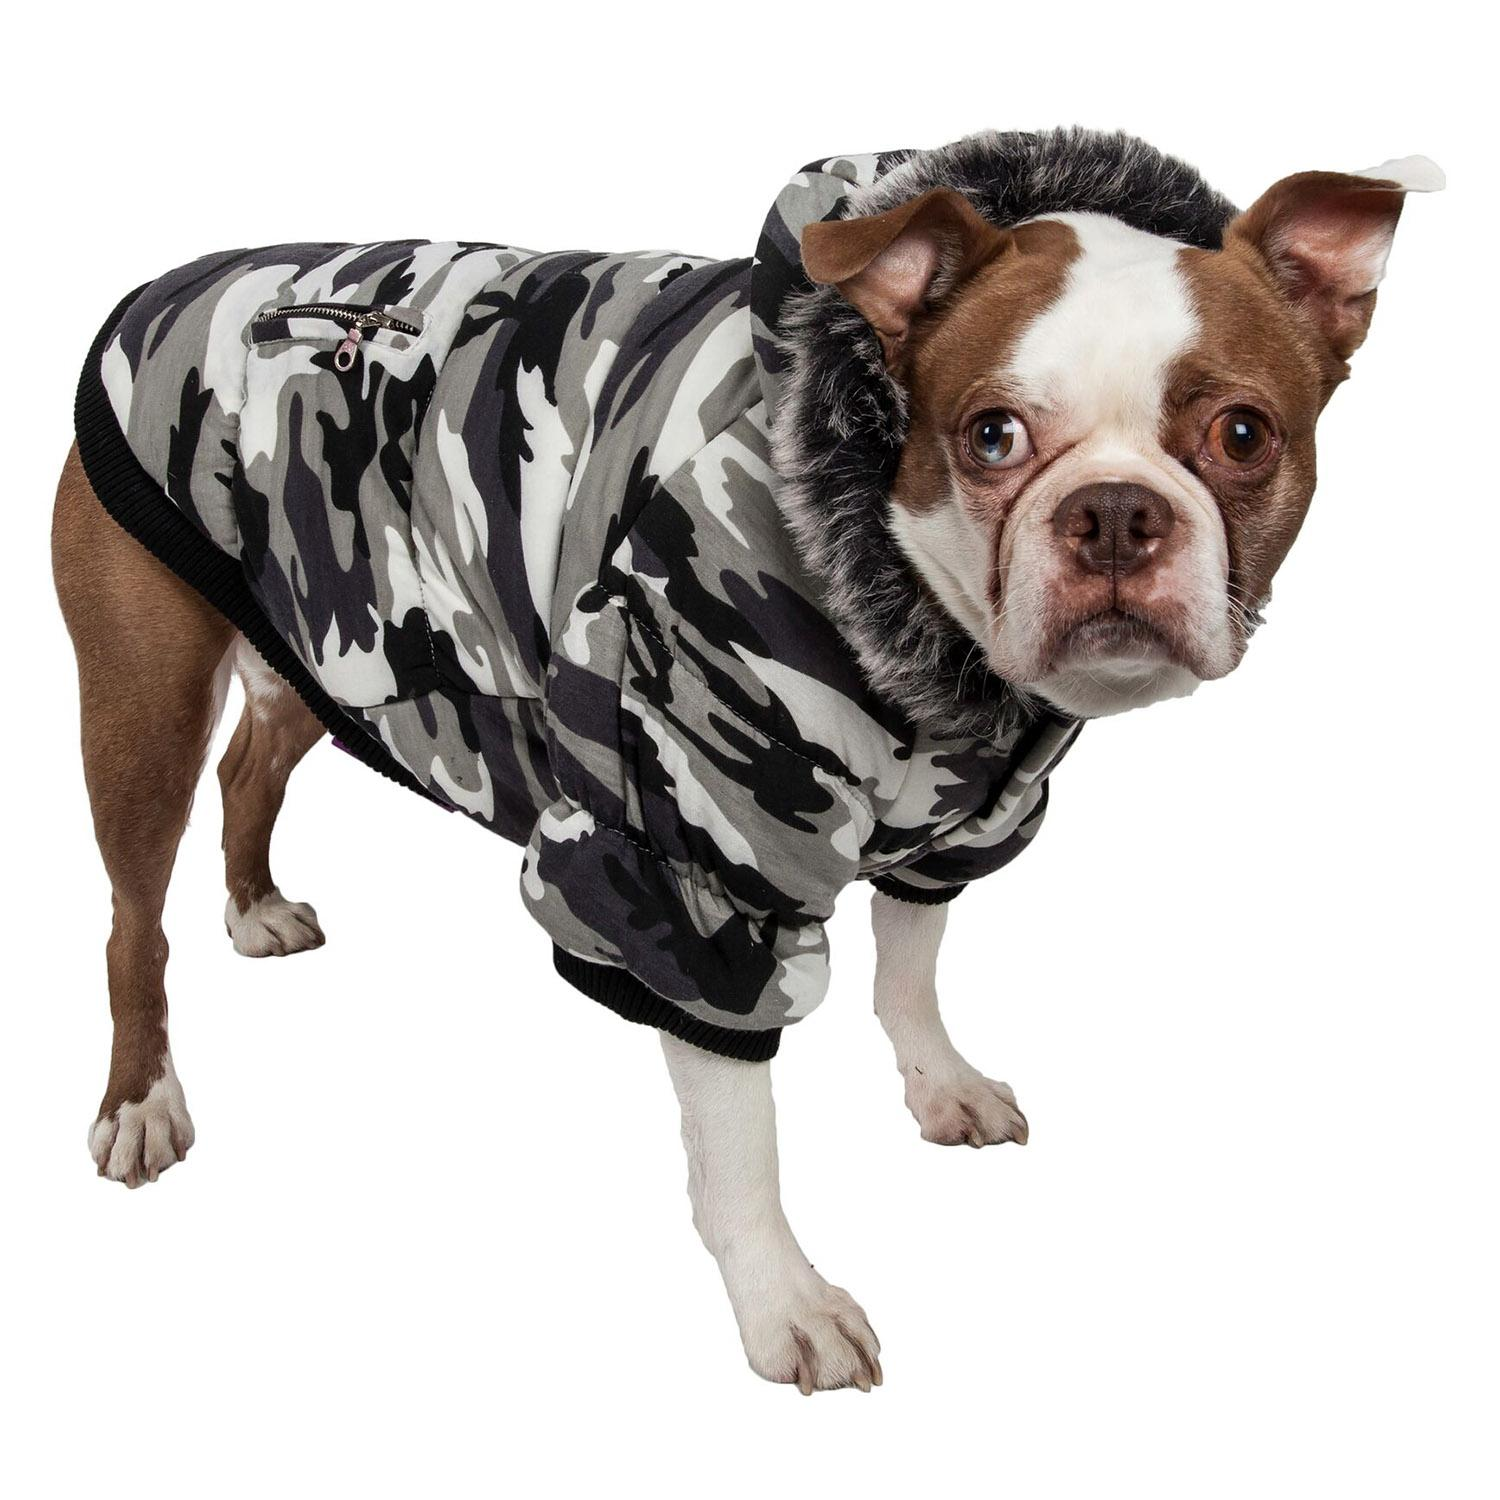 Pet Life Fashion Pet Parka Dog Coat - Snow Camouflage